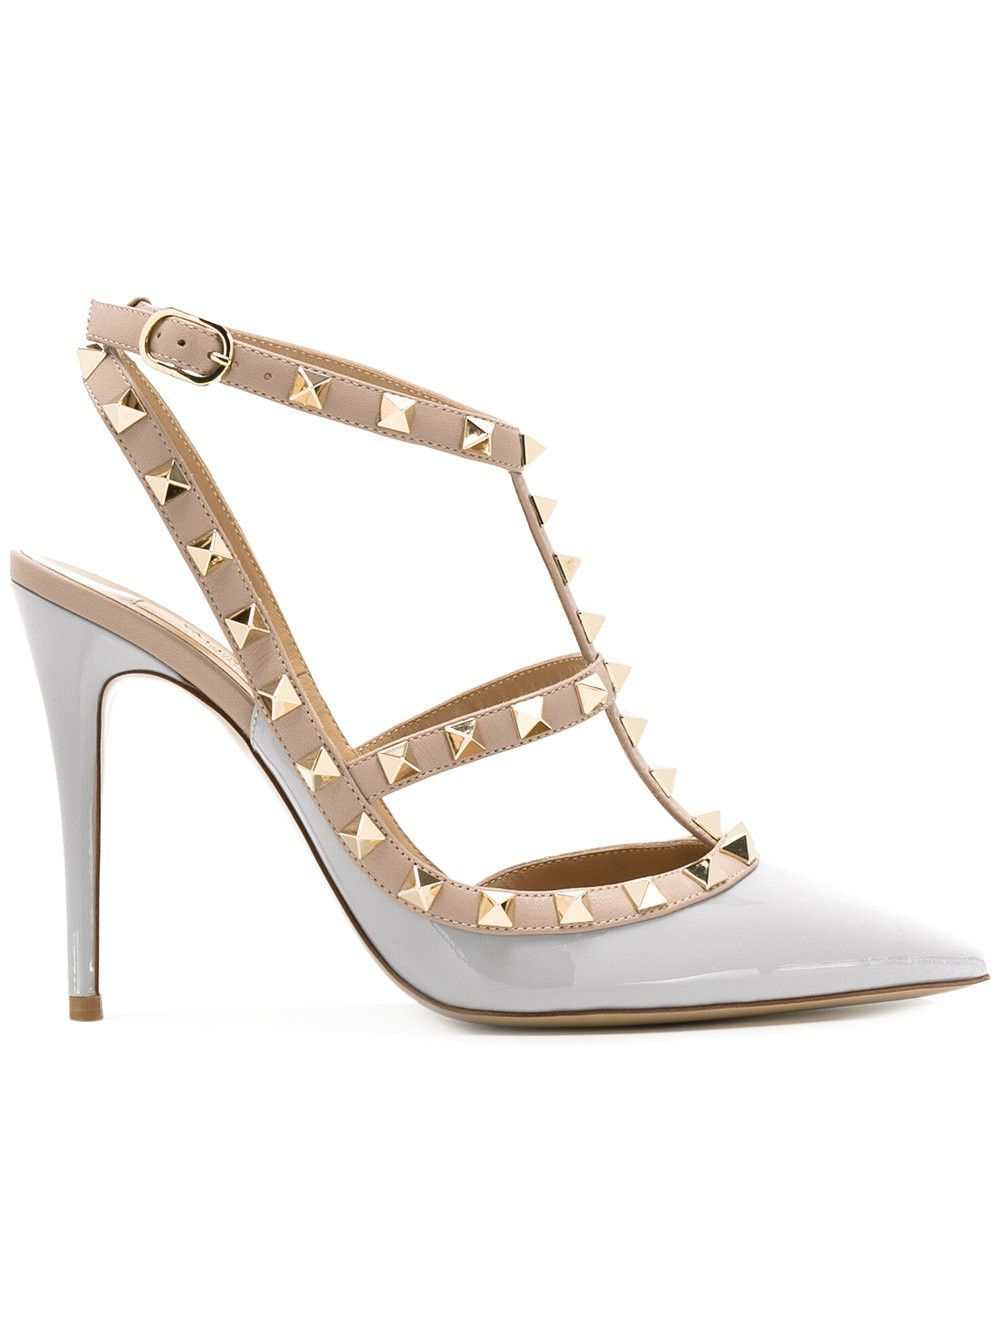 be23cc563e9 Valentino Rockstud Rockstuds Pastel Blue Gray Patent Studded Pumps Shoes